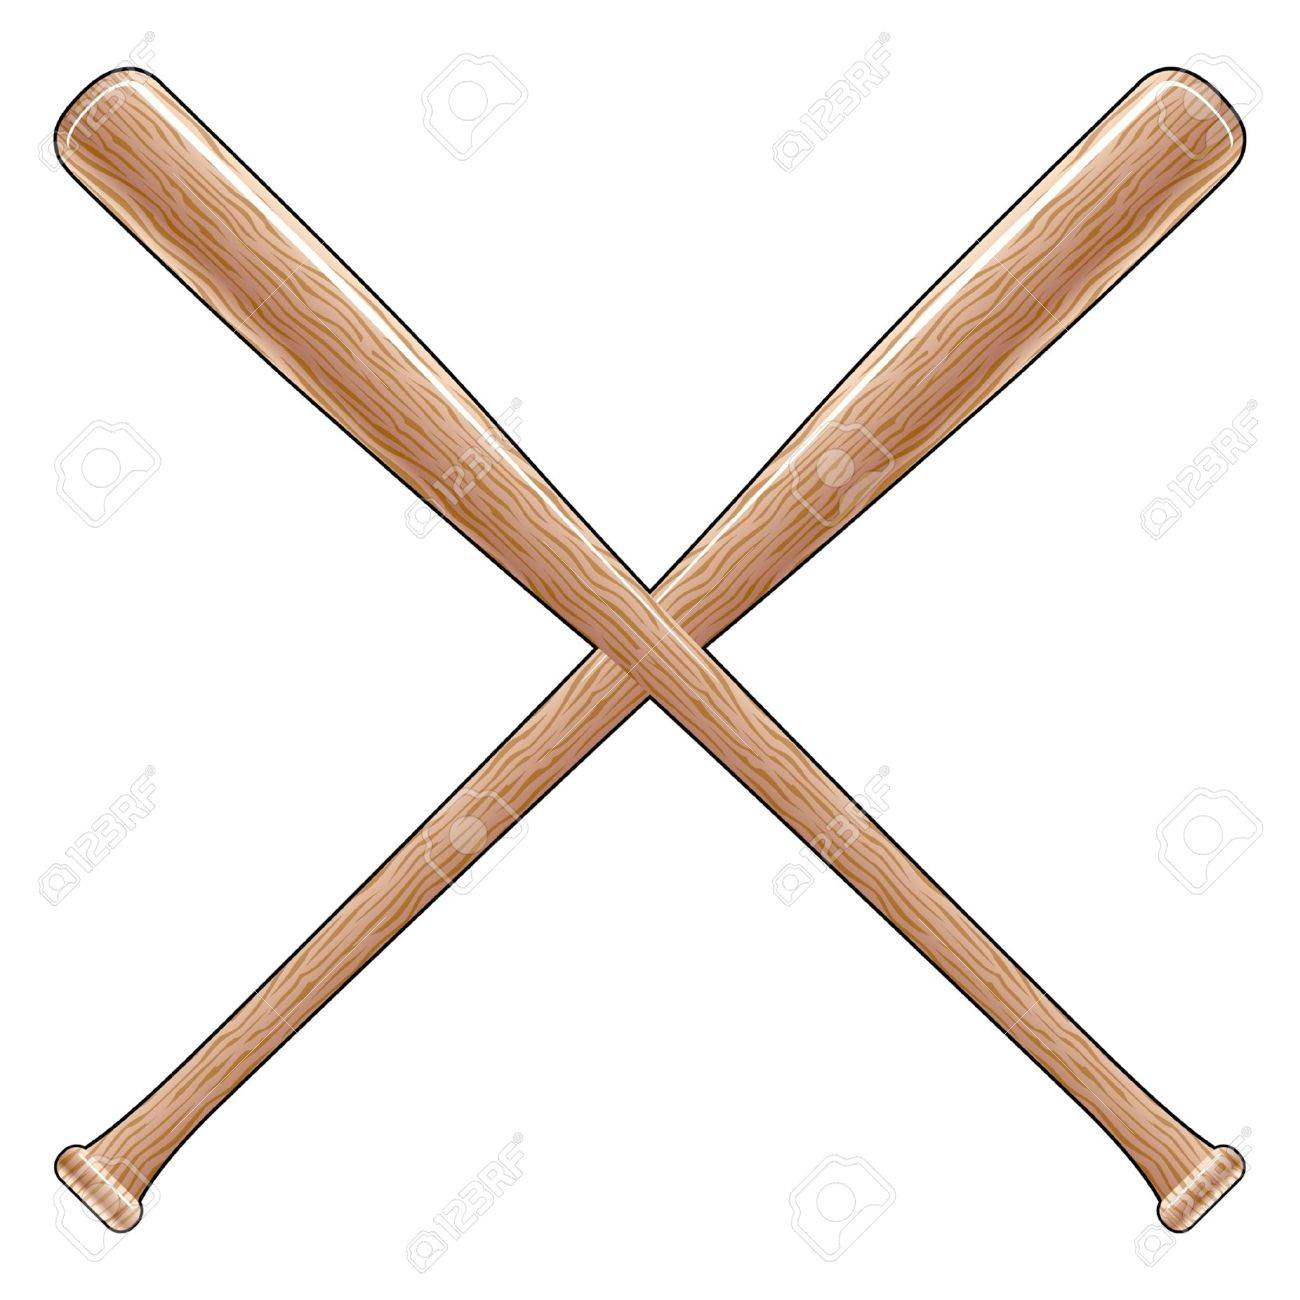 Baseball Bats is an illustration of two crossed wooden baseball...